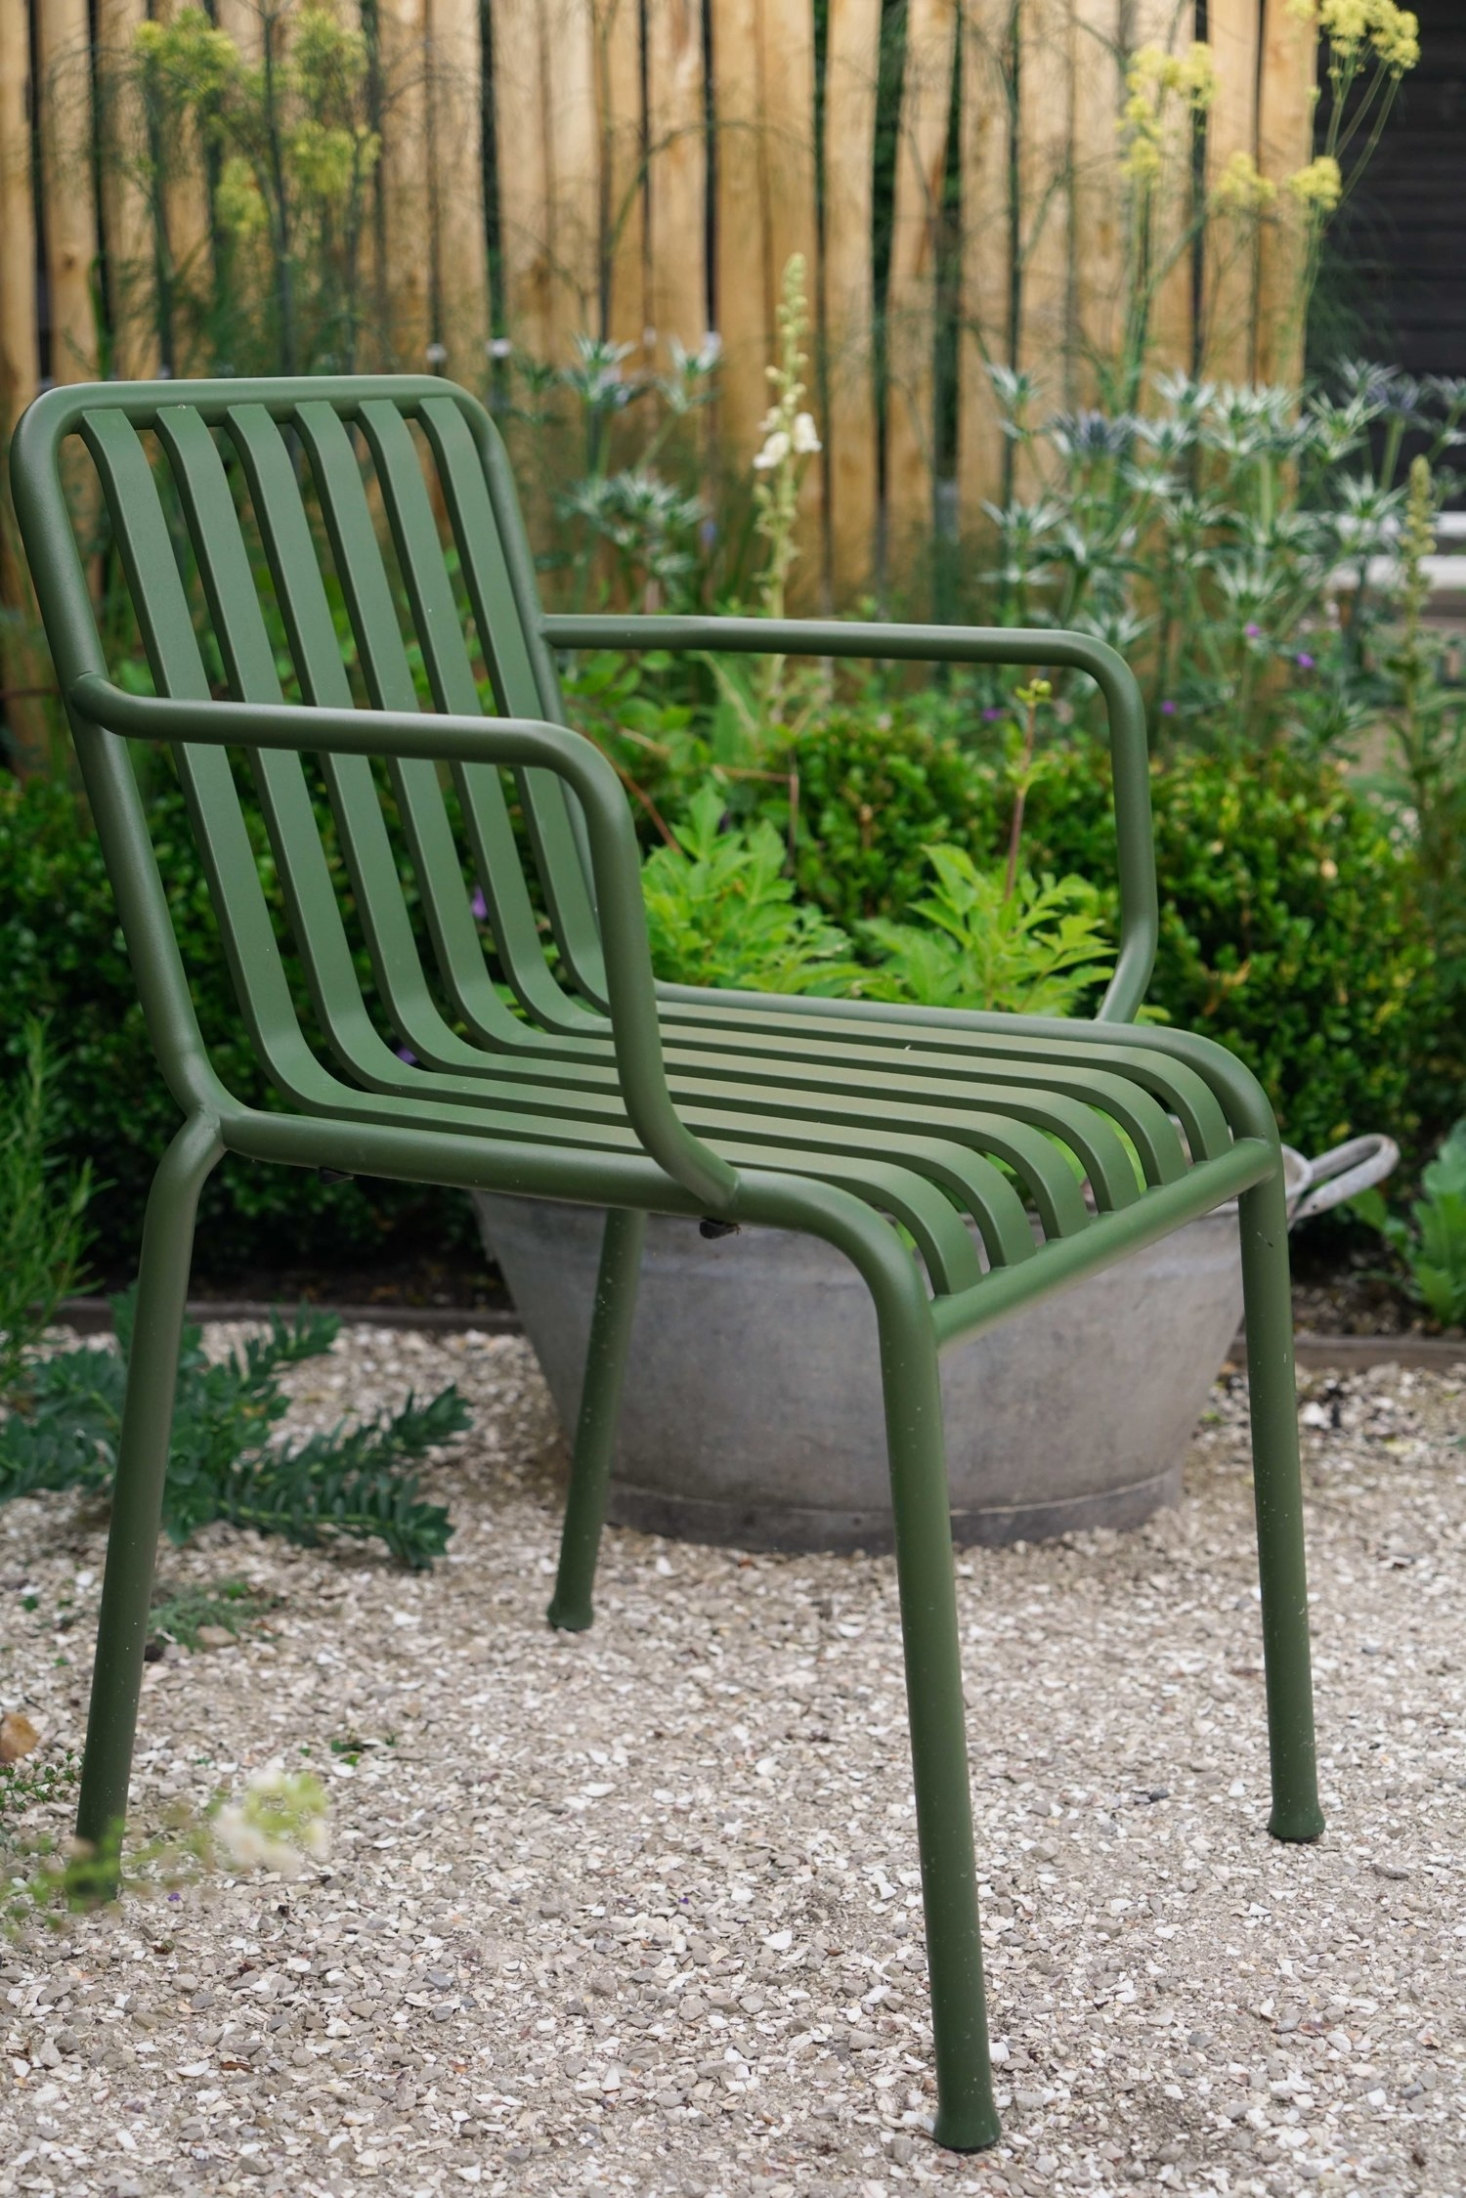 farlamandchandler-whitstable-kent-hay-dining-chair-chestnut-poles-planting-2-1466x2198.jpg